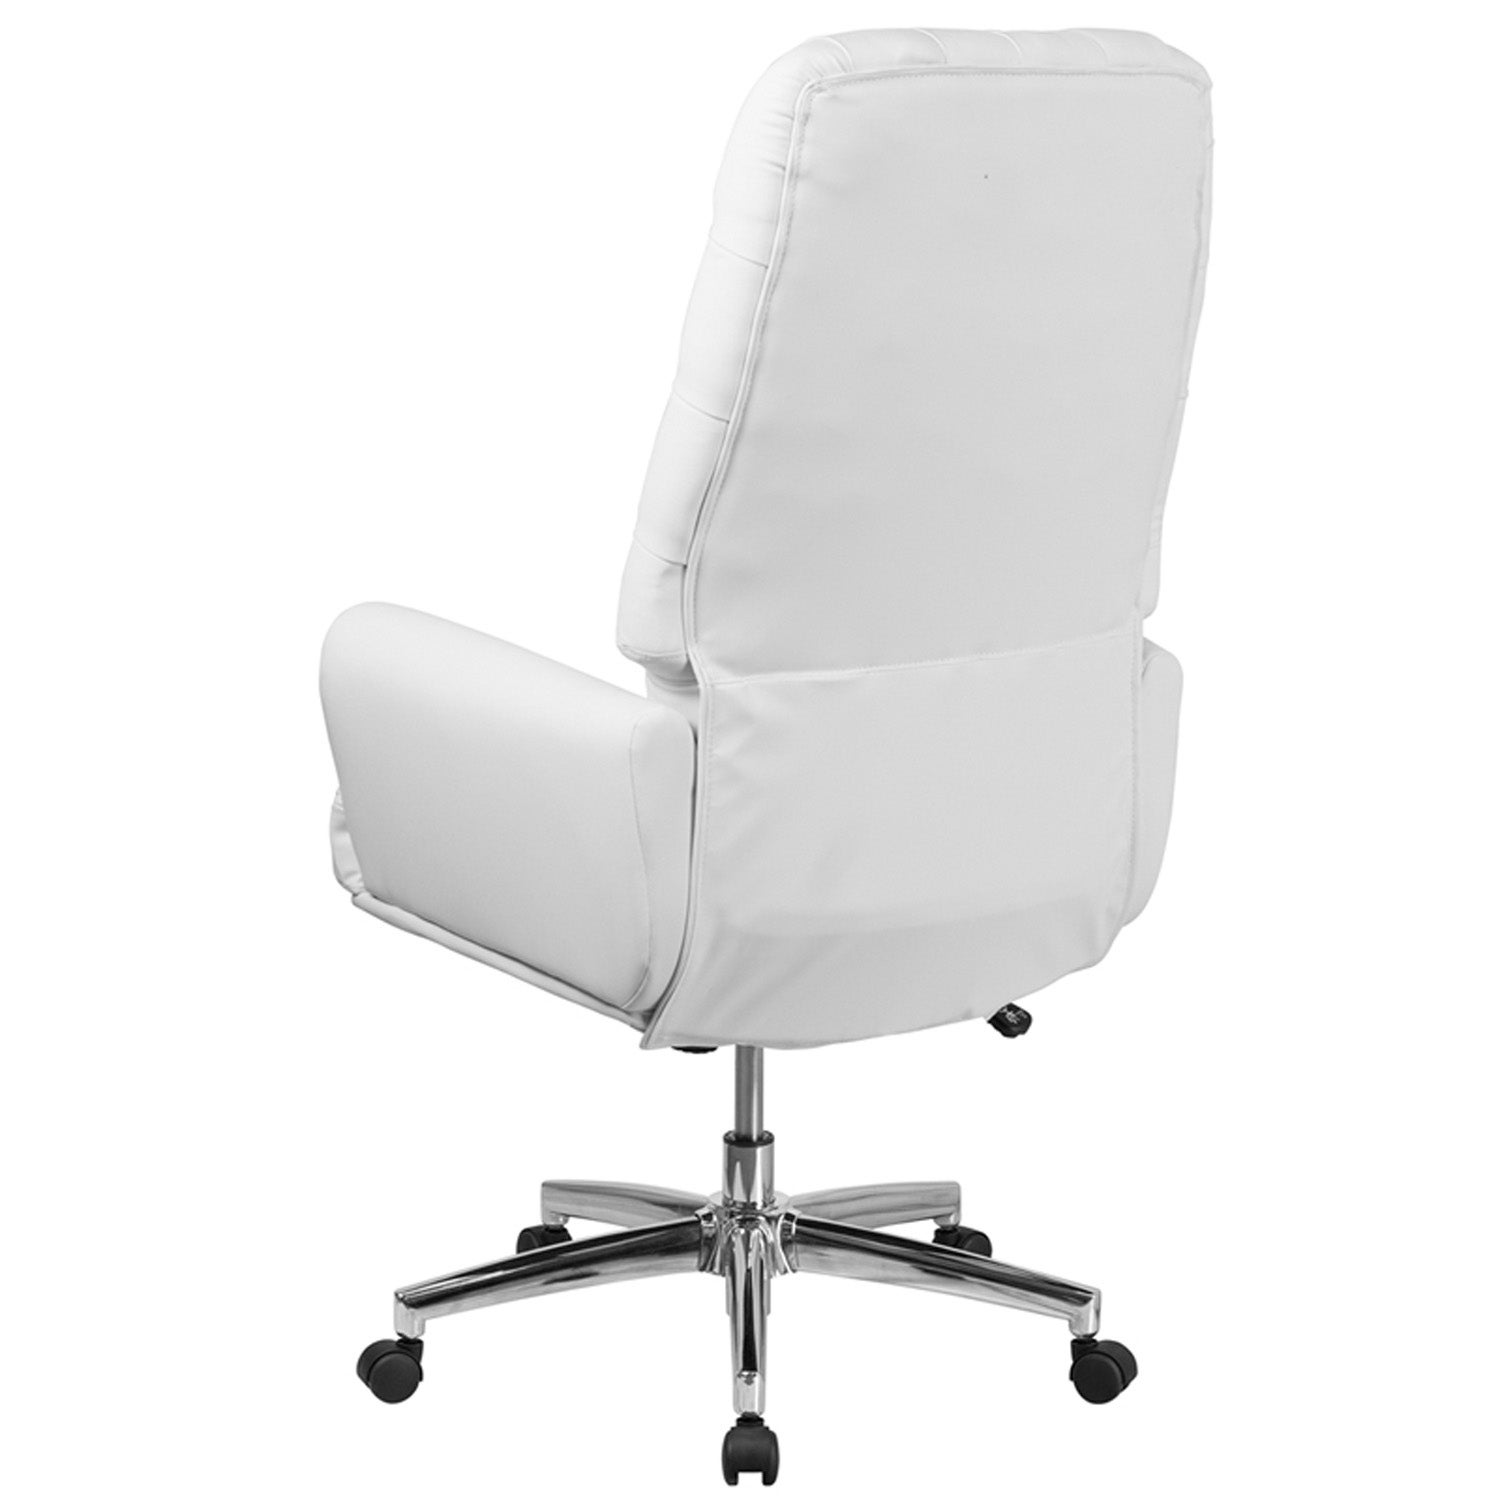 Amazing Silkeborg High Back Tufted White Leather Executive Swivel Chair W Arms Squirreltailoven Fun Painted Chair Ideas Images Squirreltailovenorg